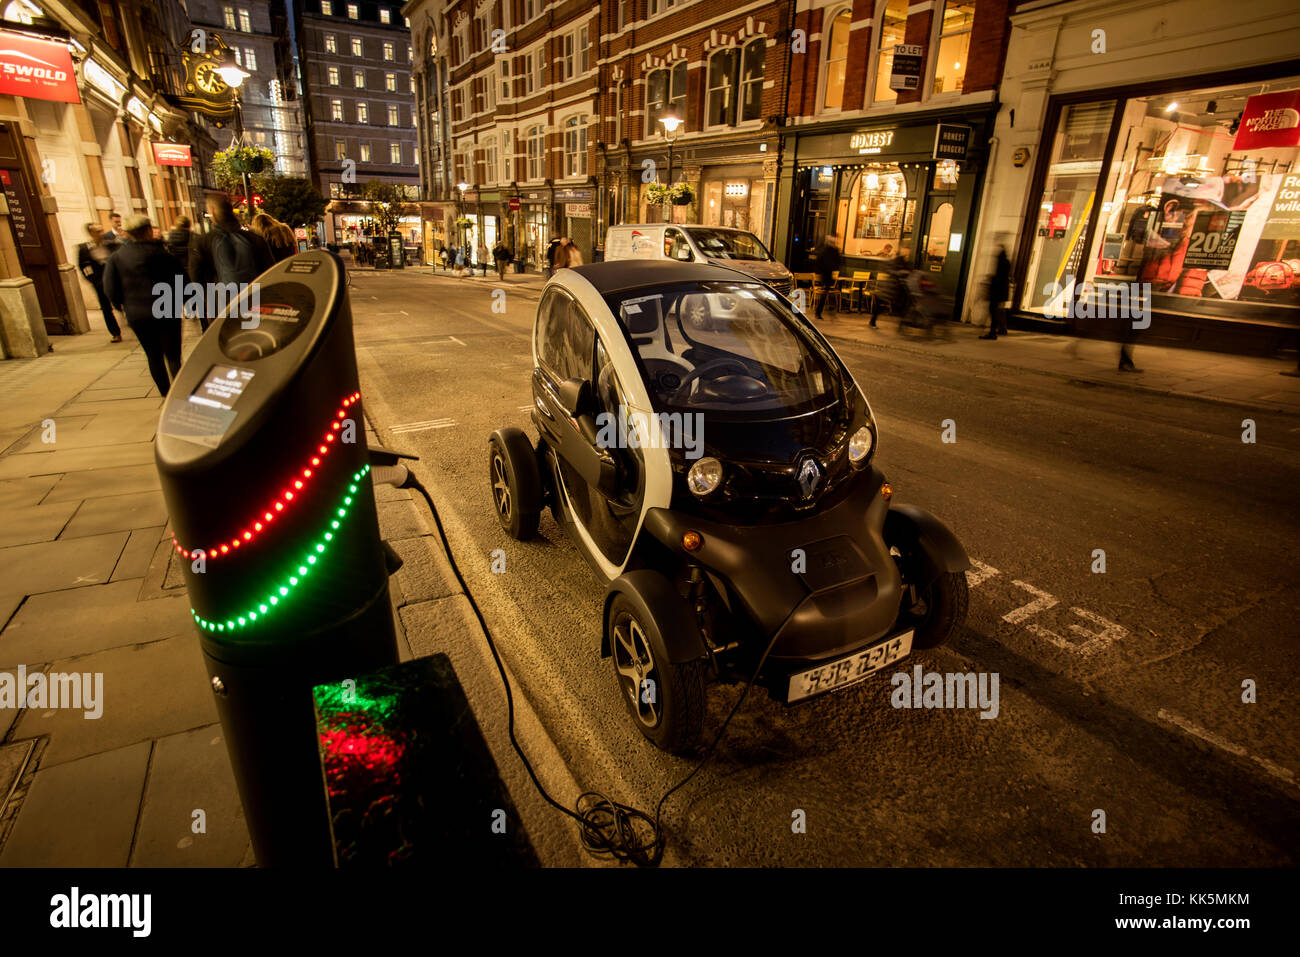 London Covent Garden area, England, UK. Electric car being charged up. Nov 2017 Stock Photo